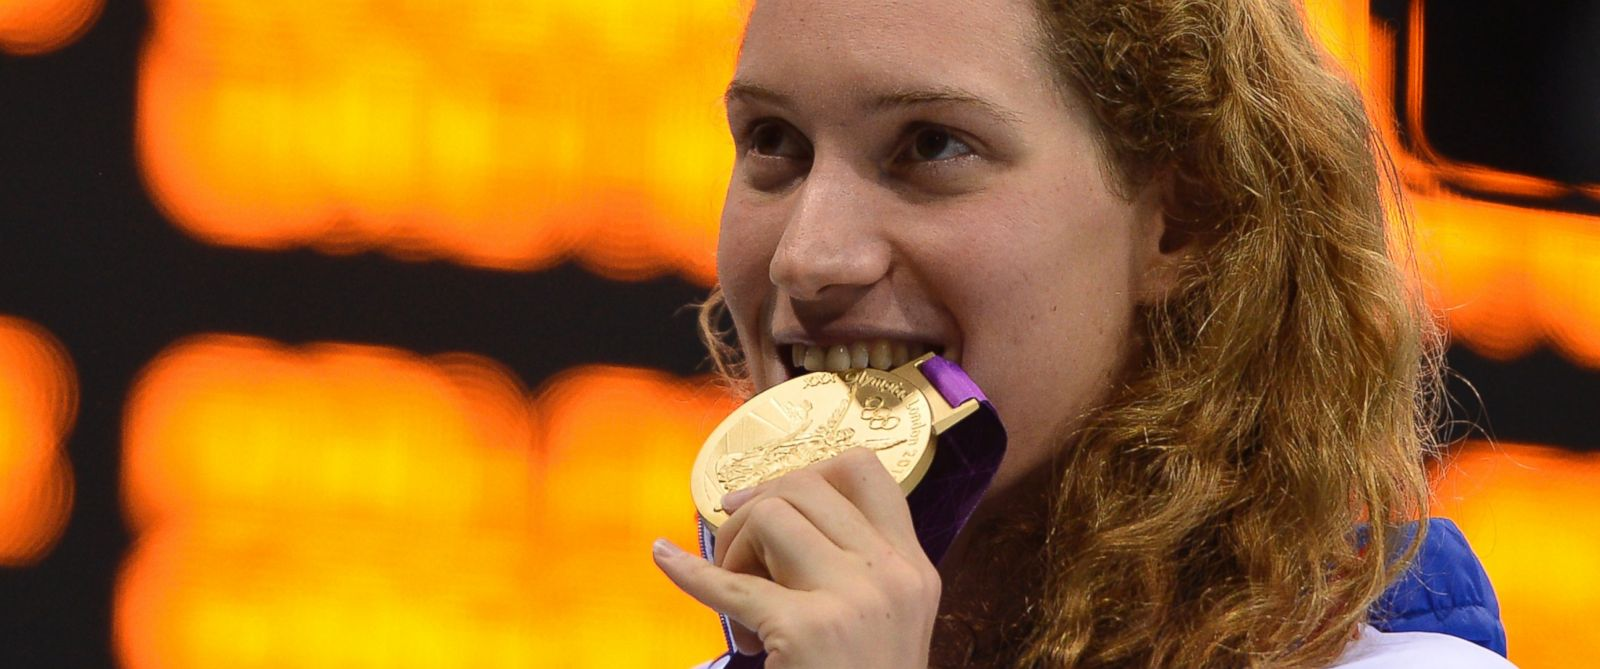 PHOTO: Frances gold medalist Camille Muffat celebrates on the podium after winning the womens 400m freestyle swimming event at the London 2012 Olympic Games on July 29, 2012 in London.